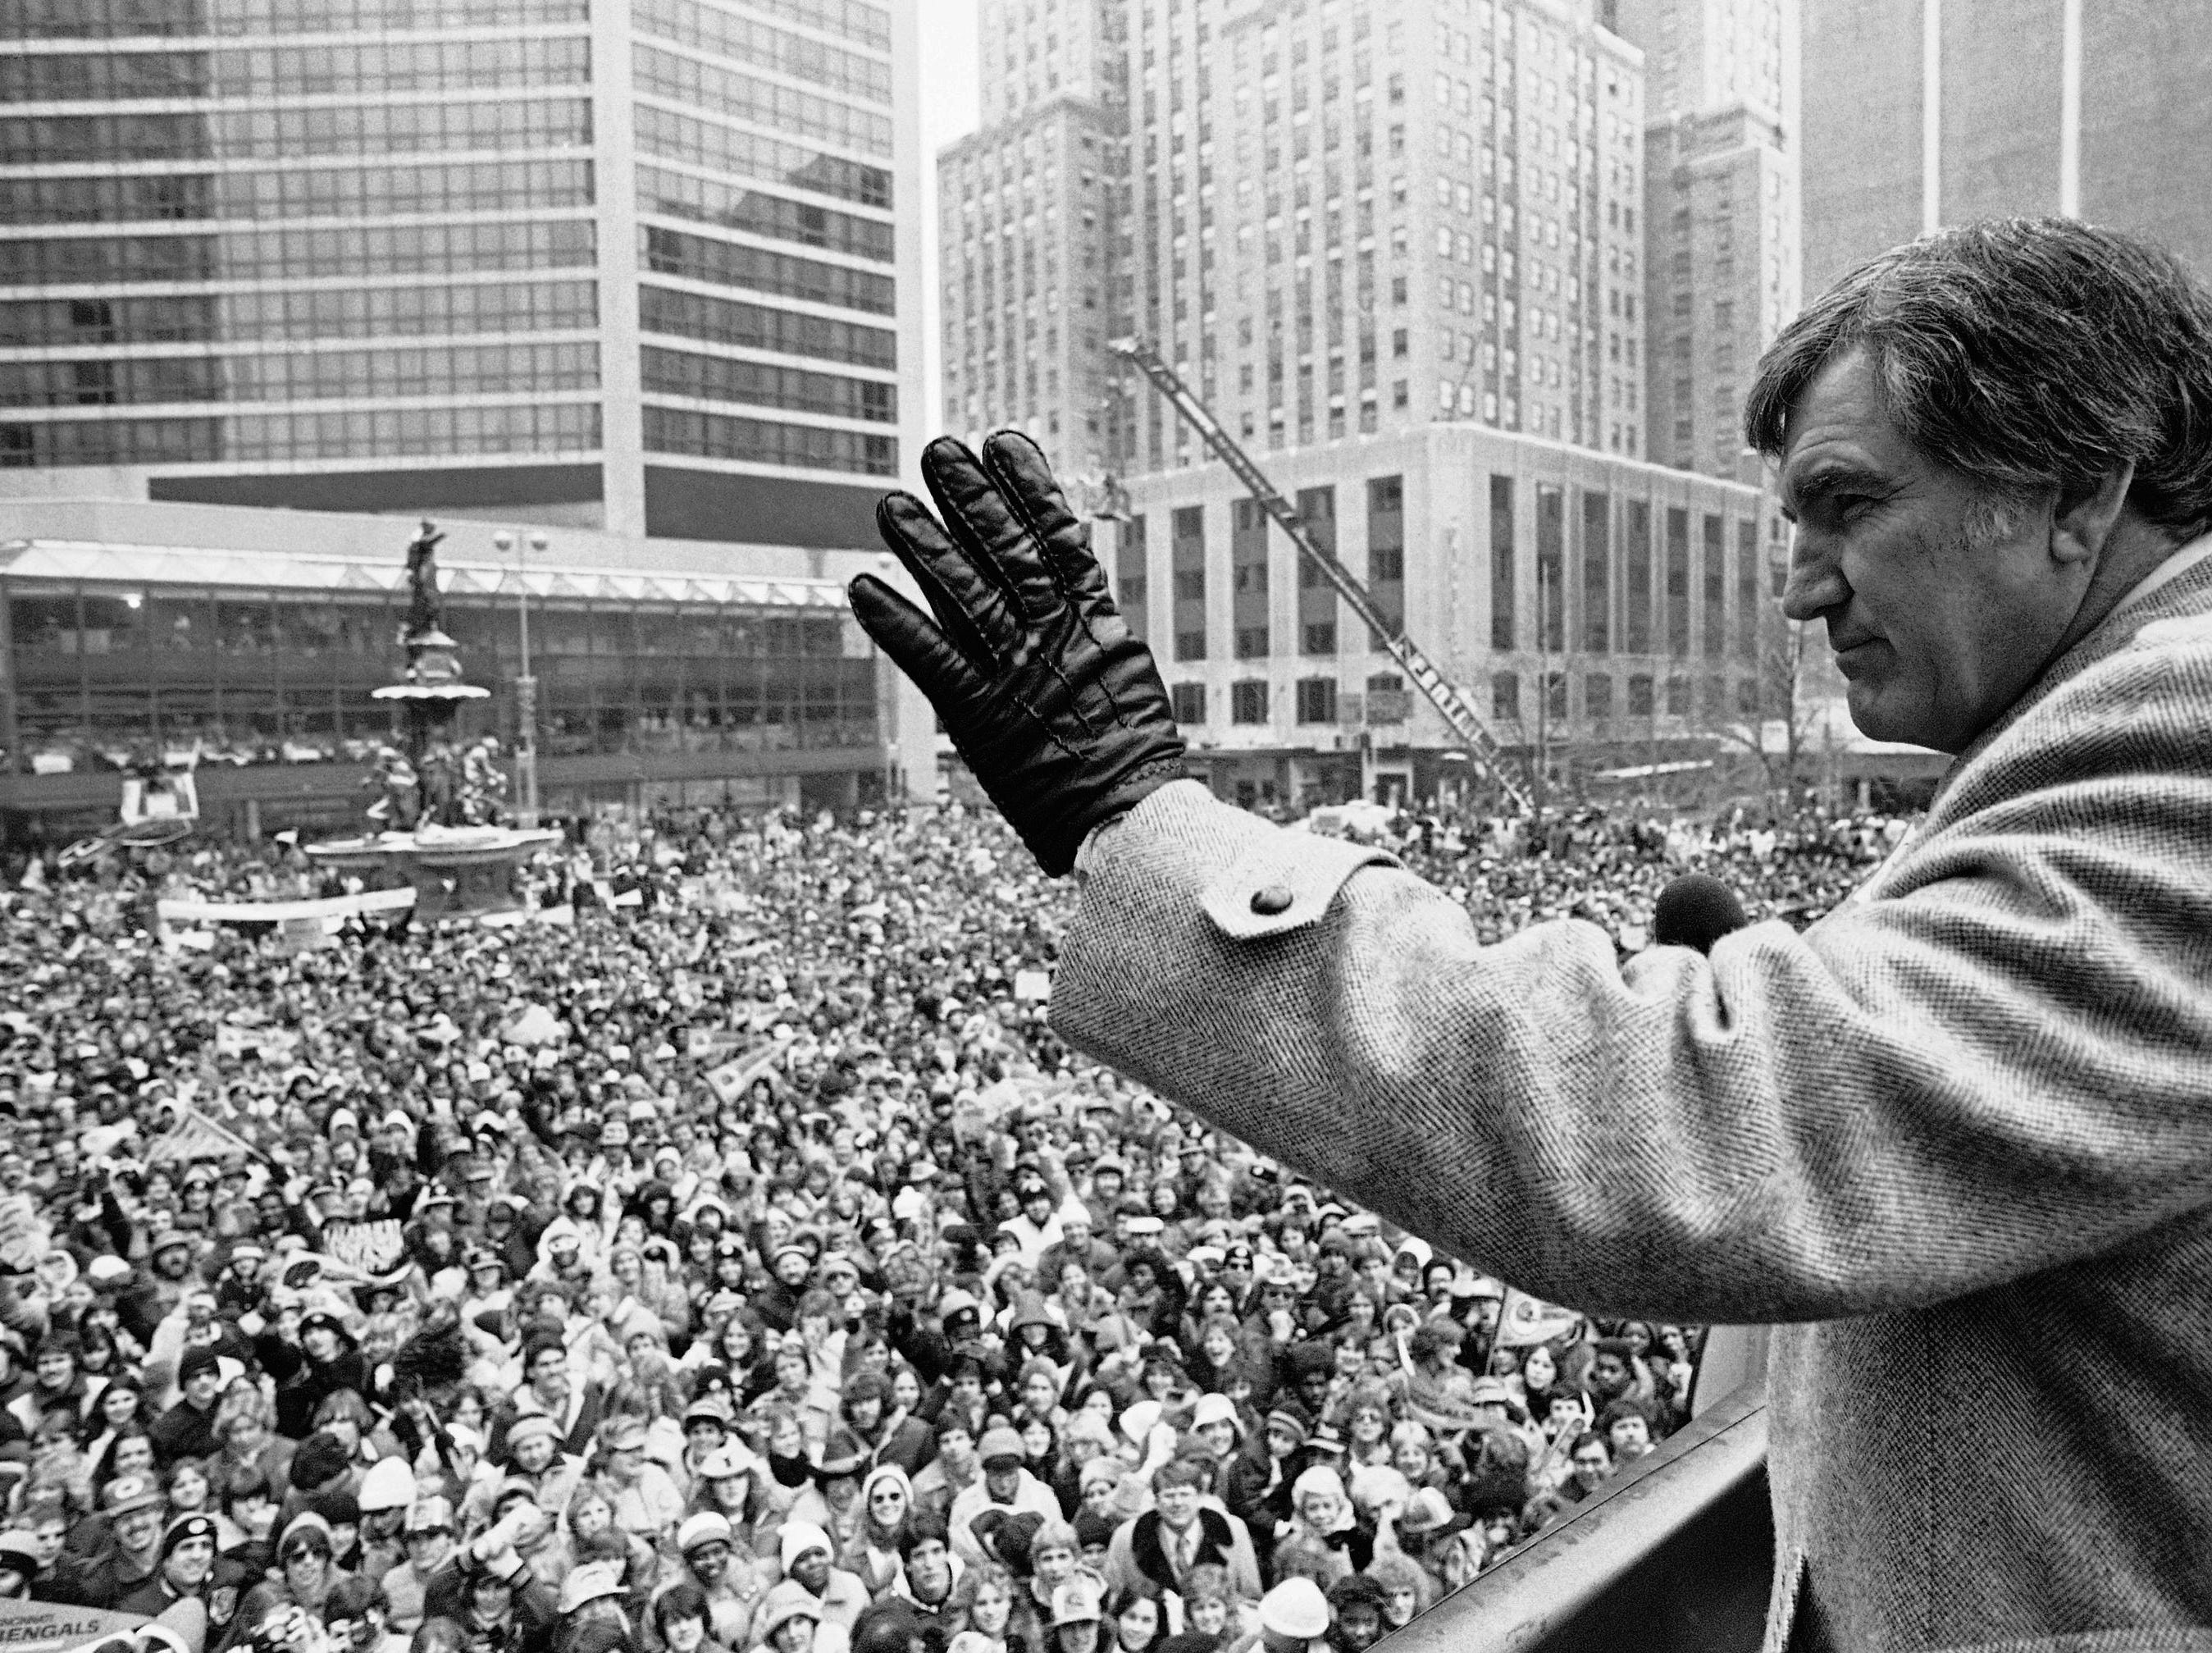 In this Jan. 25, 1982, file photo, Cincinnati Bengals head coach Forrest Gregg waves to the crowd in Cincinnati. The Bengals lost to the San Francisco 49ers in the Super Bowl the day before. The Pro Football Hall of Fame says Green Bay Packers great Forrest Gregg has died. He was 85. The Hall did not disclose details about his death in its statement Friday, April 12, 2019.